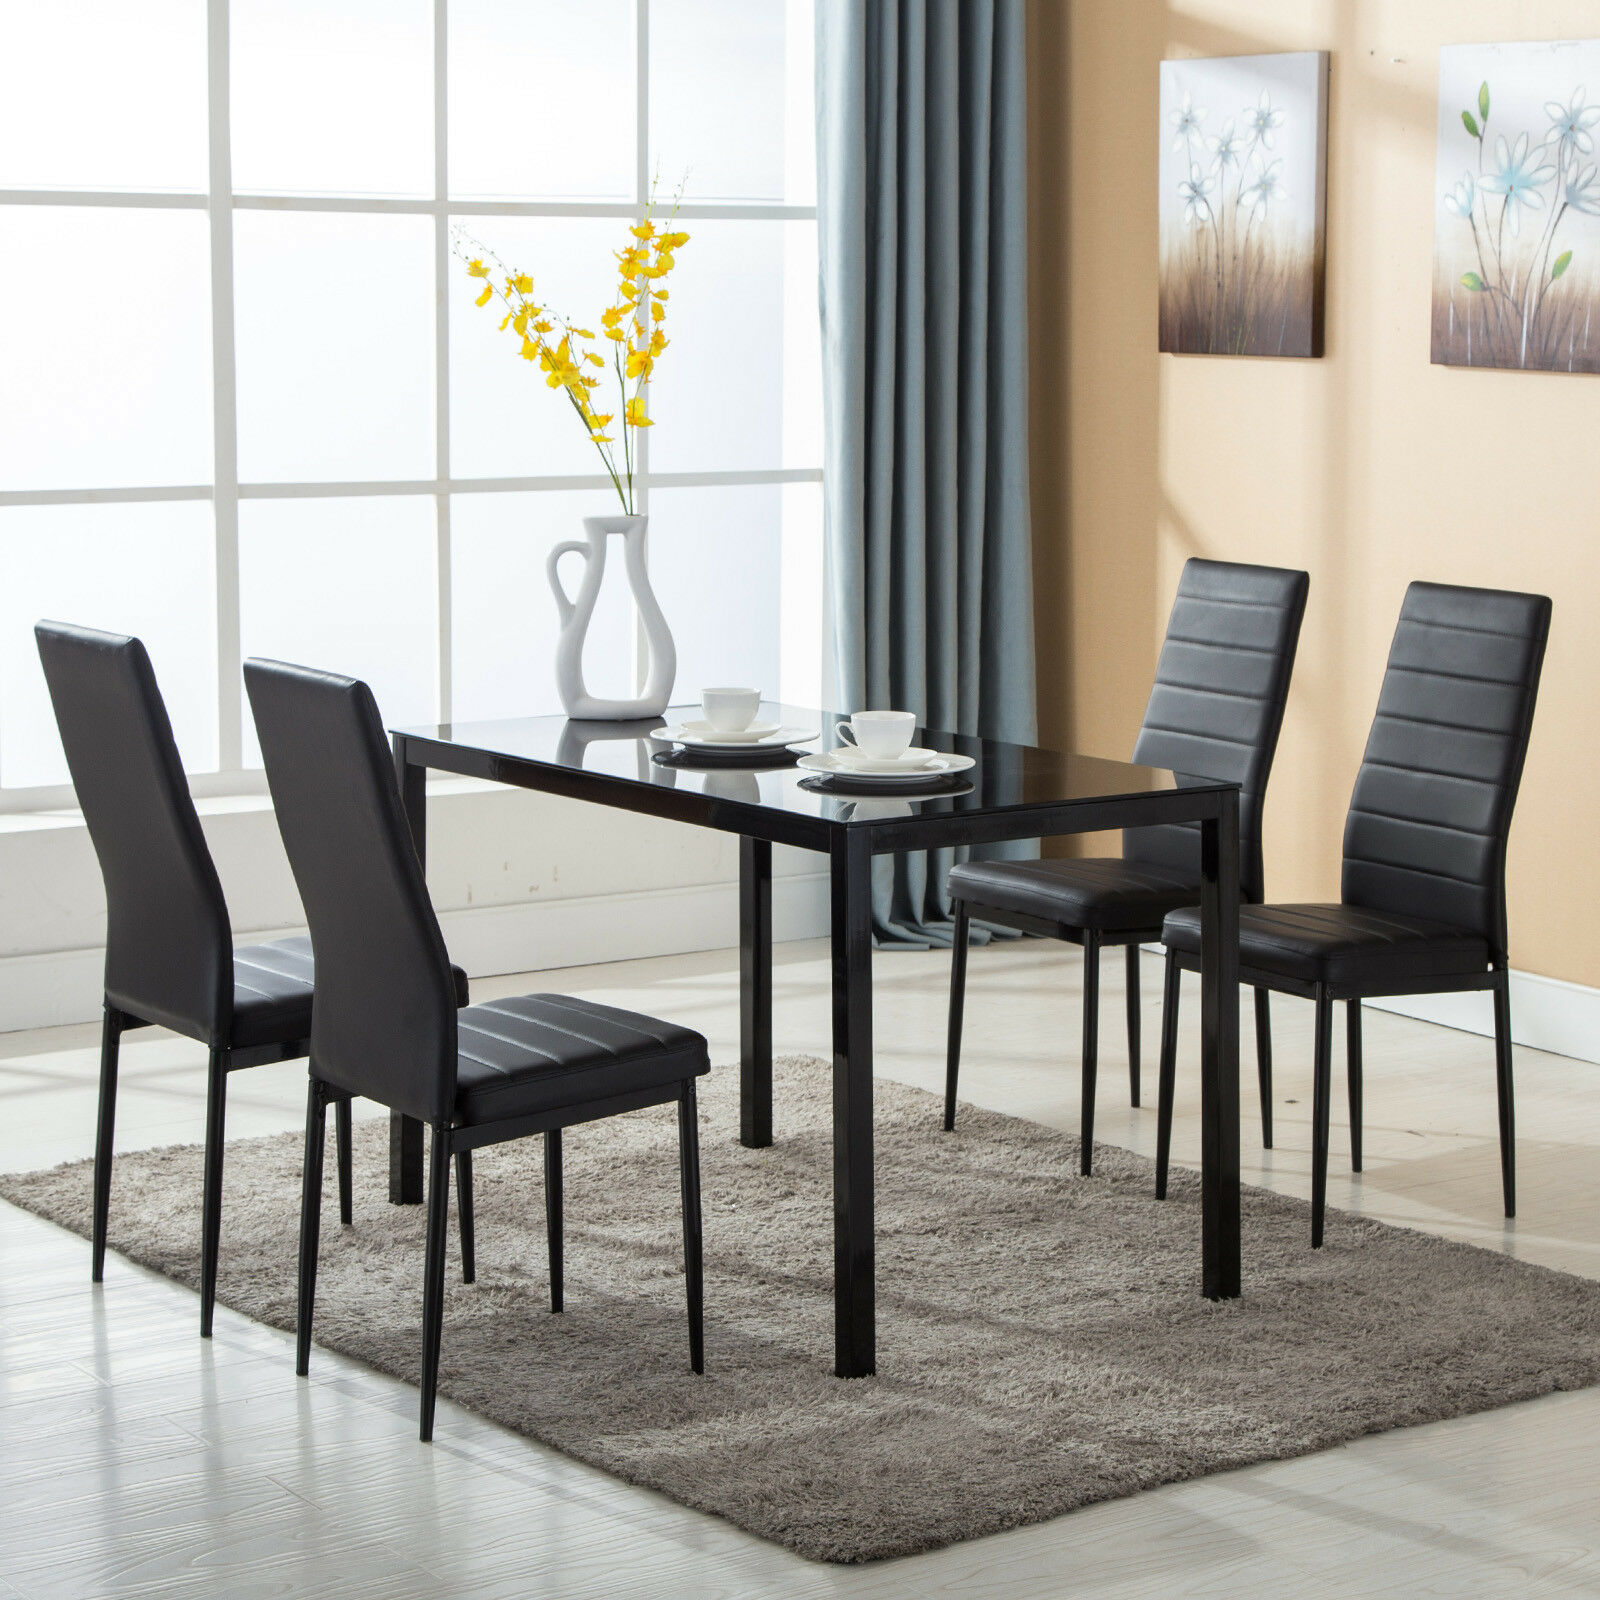 Details About 5 Piece Dining Table Set 4 Chairs Gl Metal Kitchen Room Breakfast Furniture